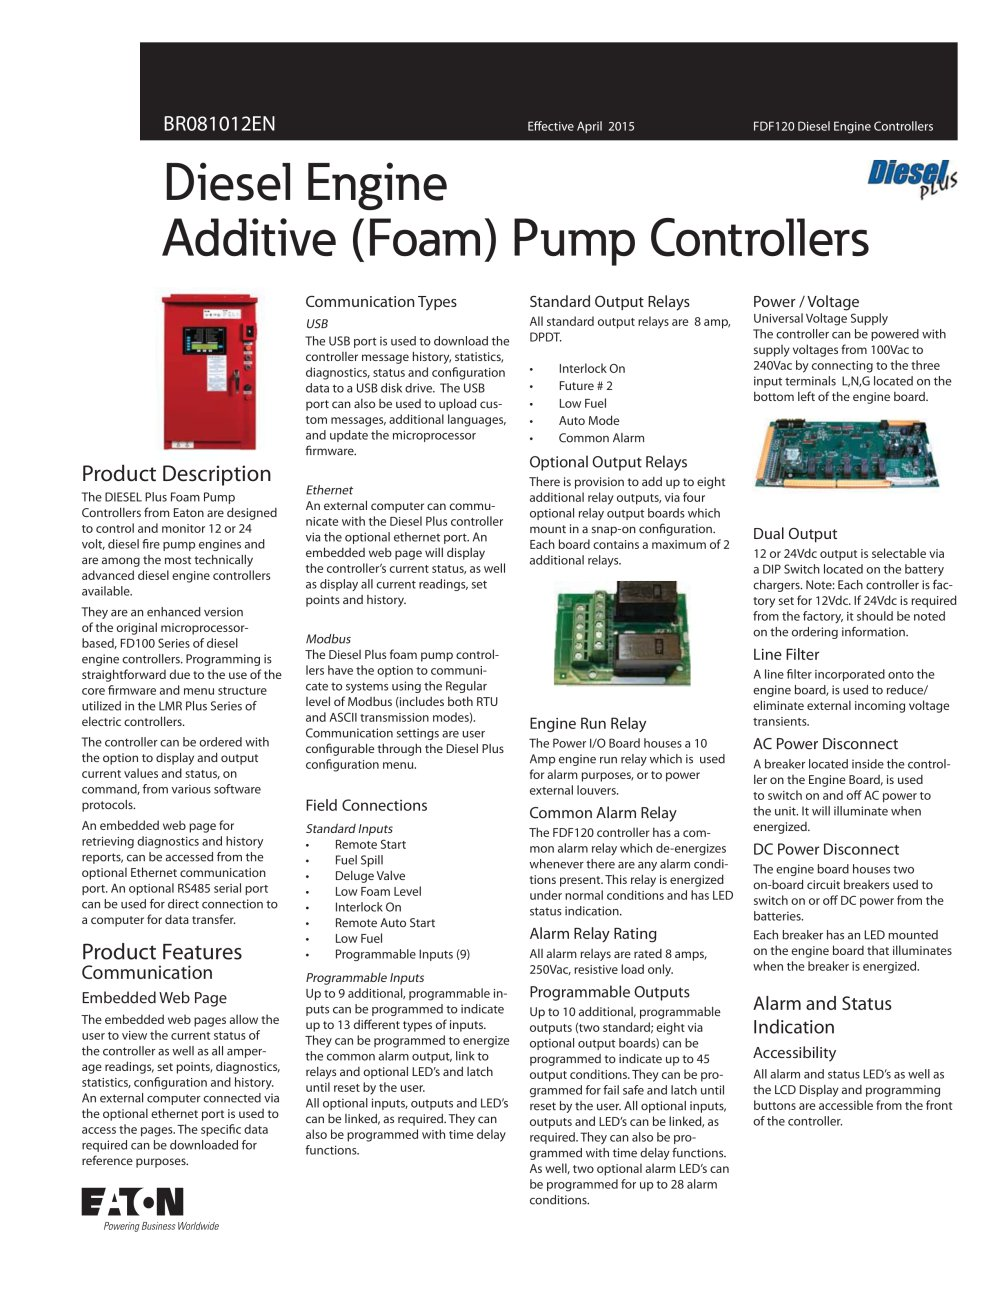 Fdf120 Diesel Engine Additive Foam Cutler Hammer Pdf Catalogue Current Alarm Relay 1 2 Pages